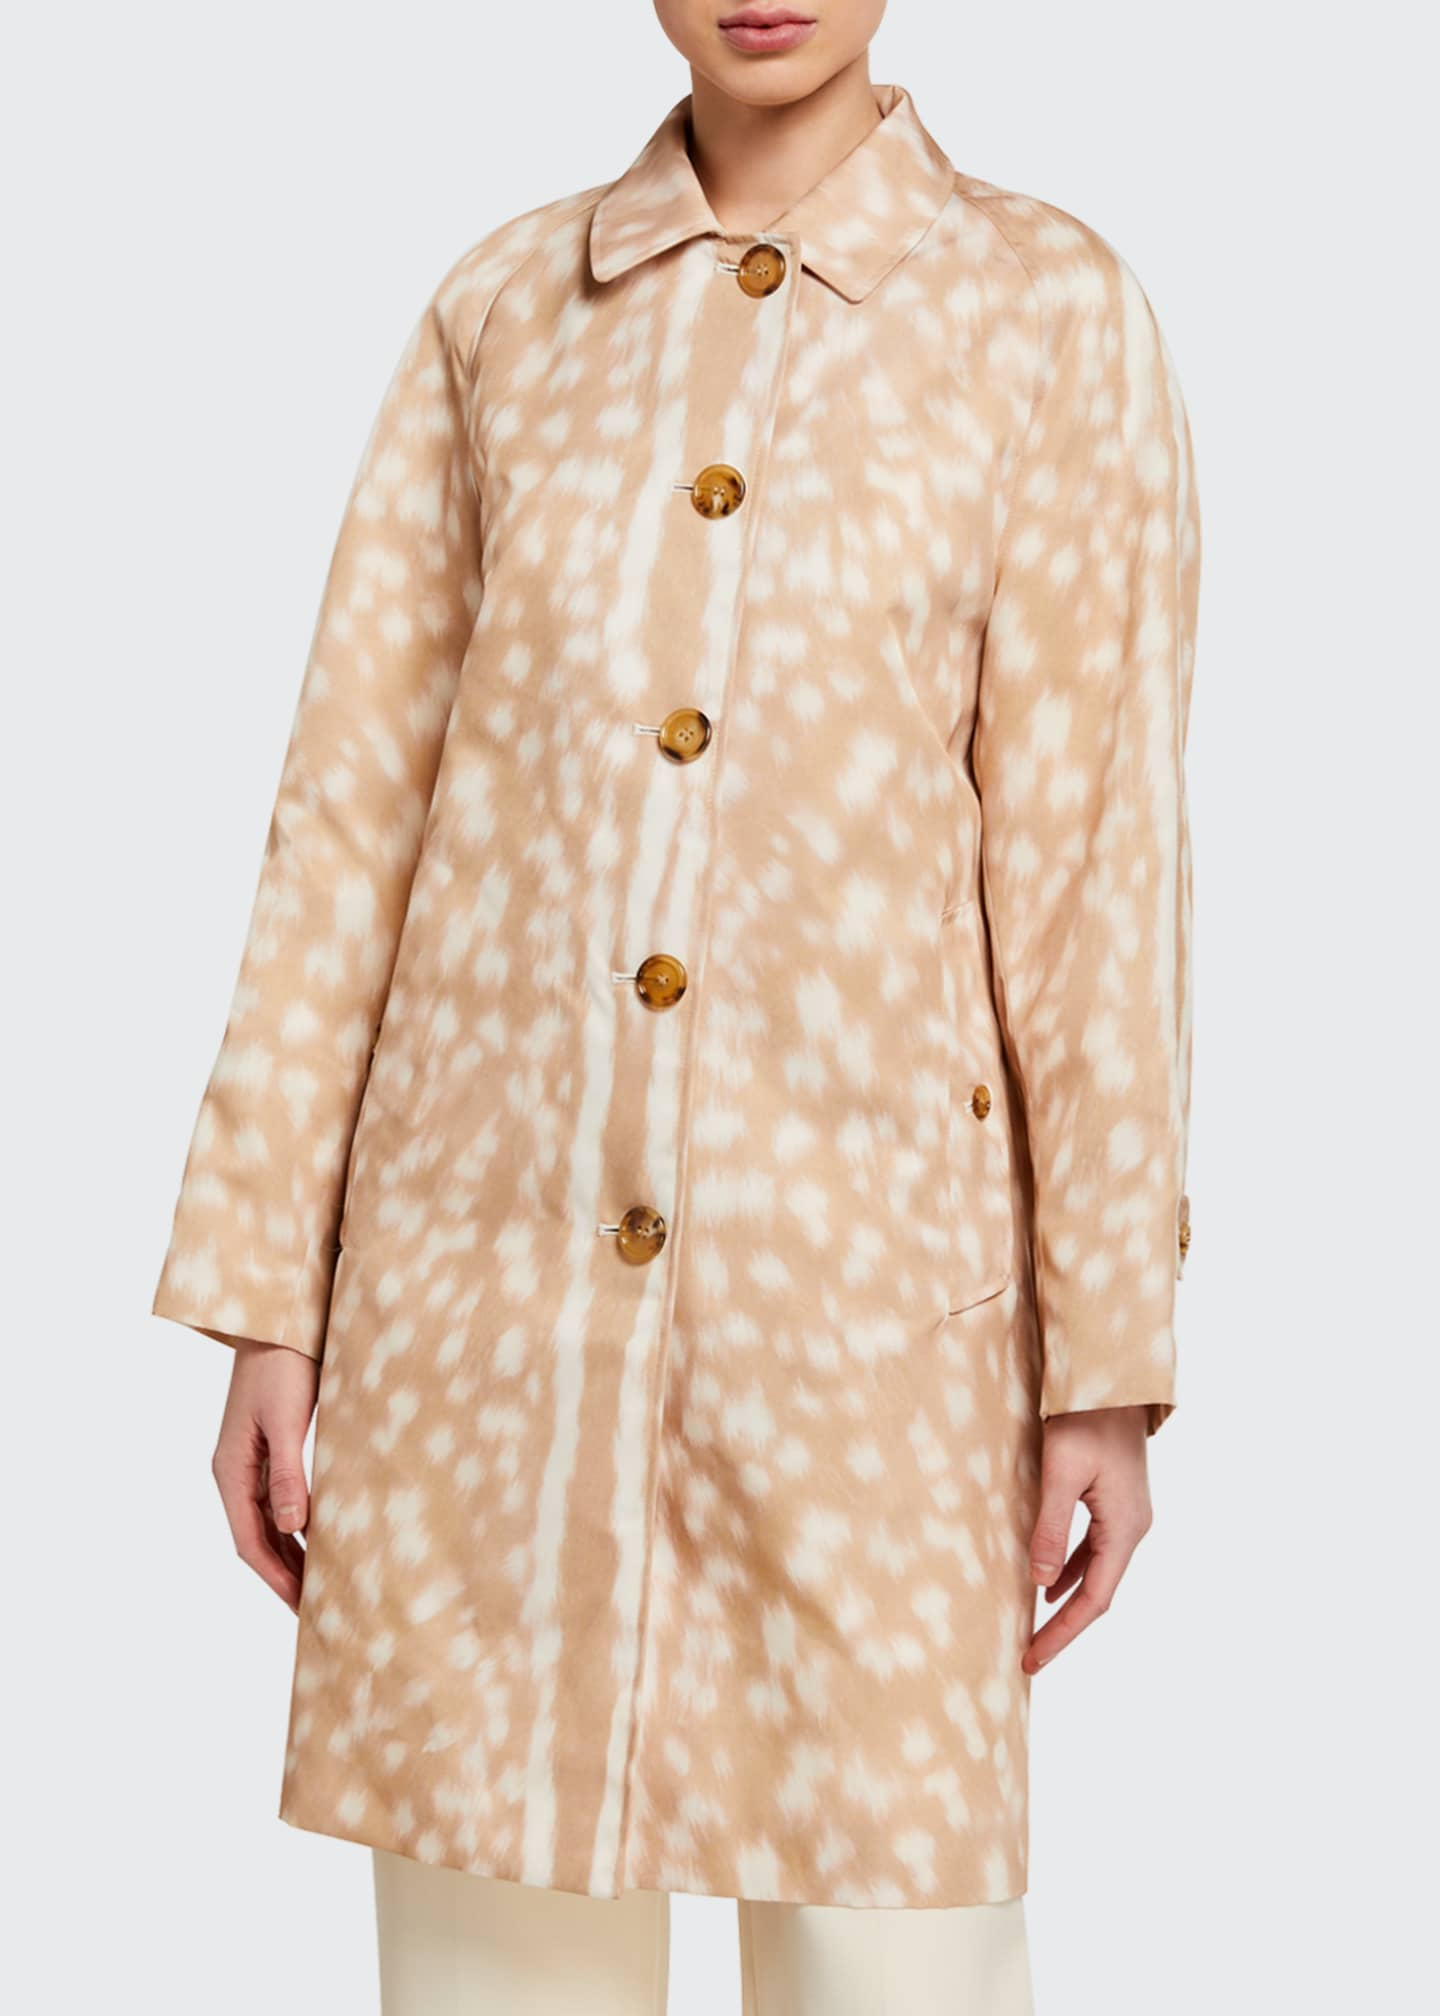 Image 3 of 3: Brunstane Fawn Print Trench Coat